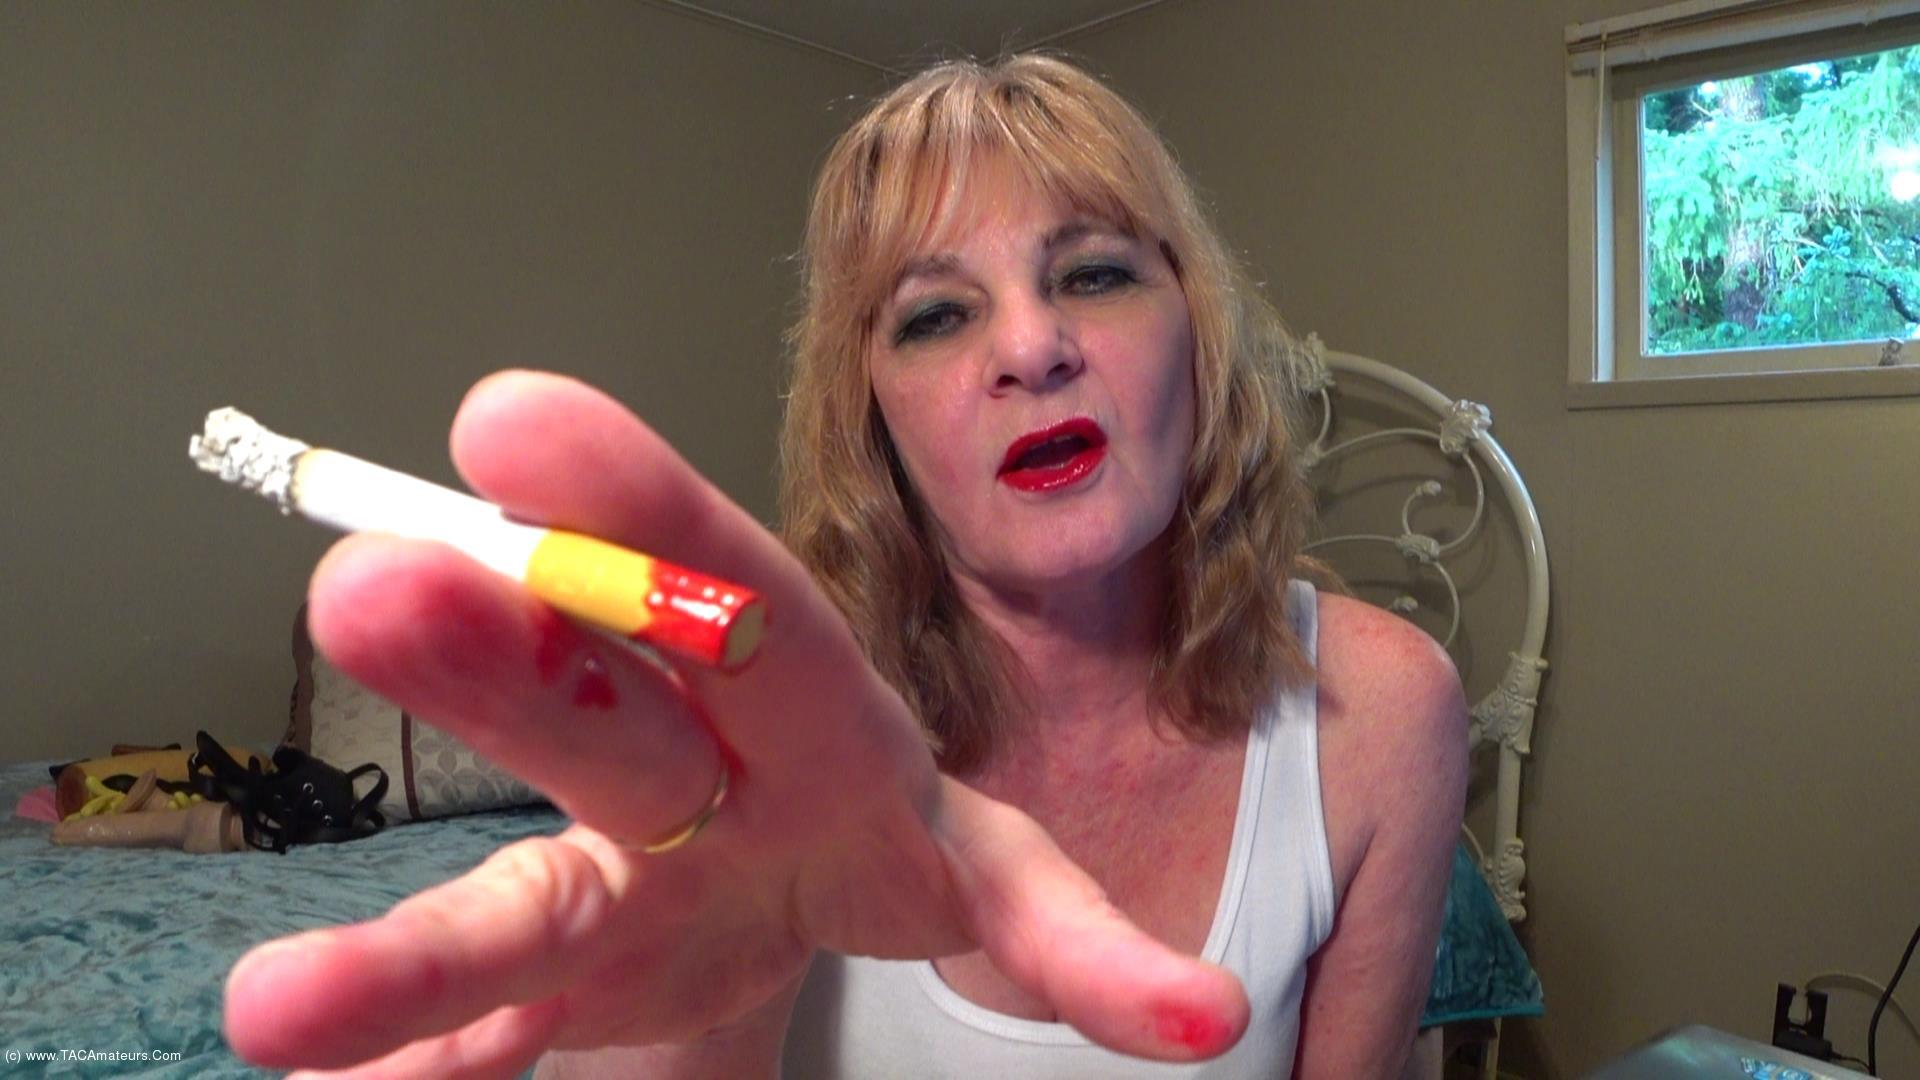 CougarBabeJolee - Smoking Shiny Red Lippy scene 1